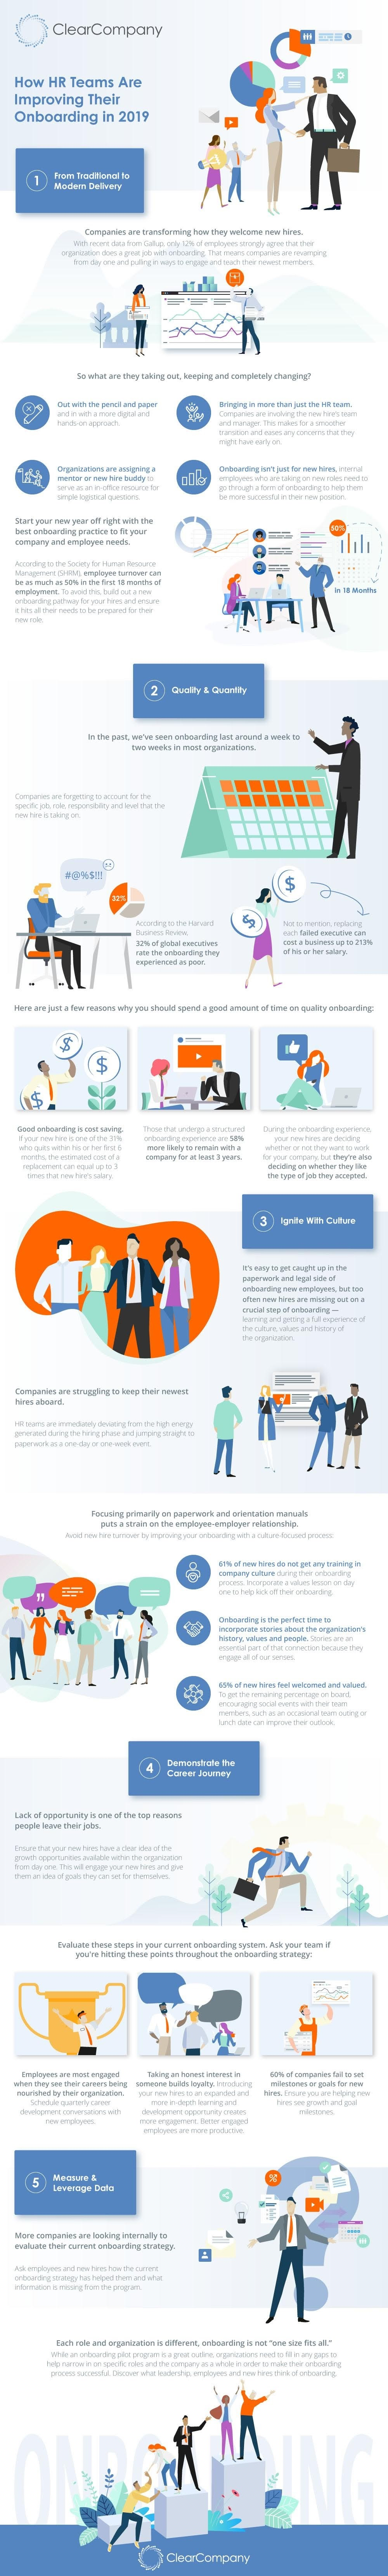 How HR Teams Are Improving Their Onboarding in 2019 #infographic